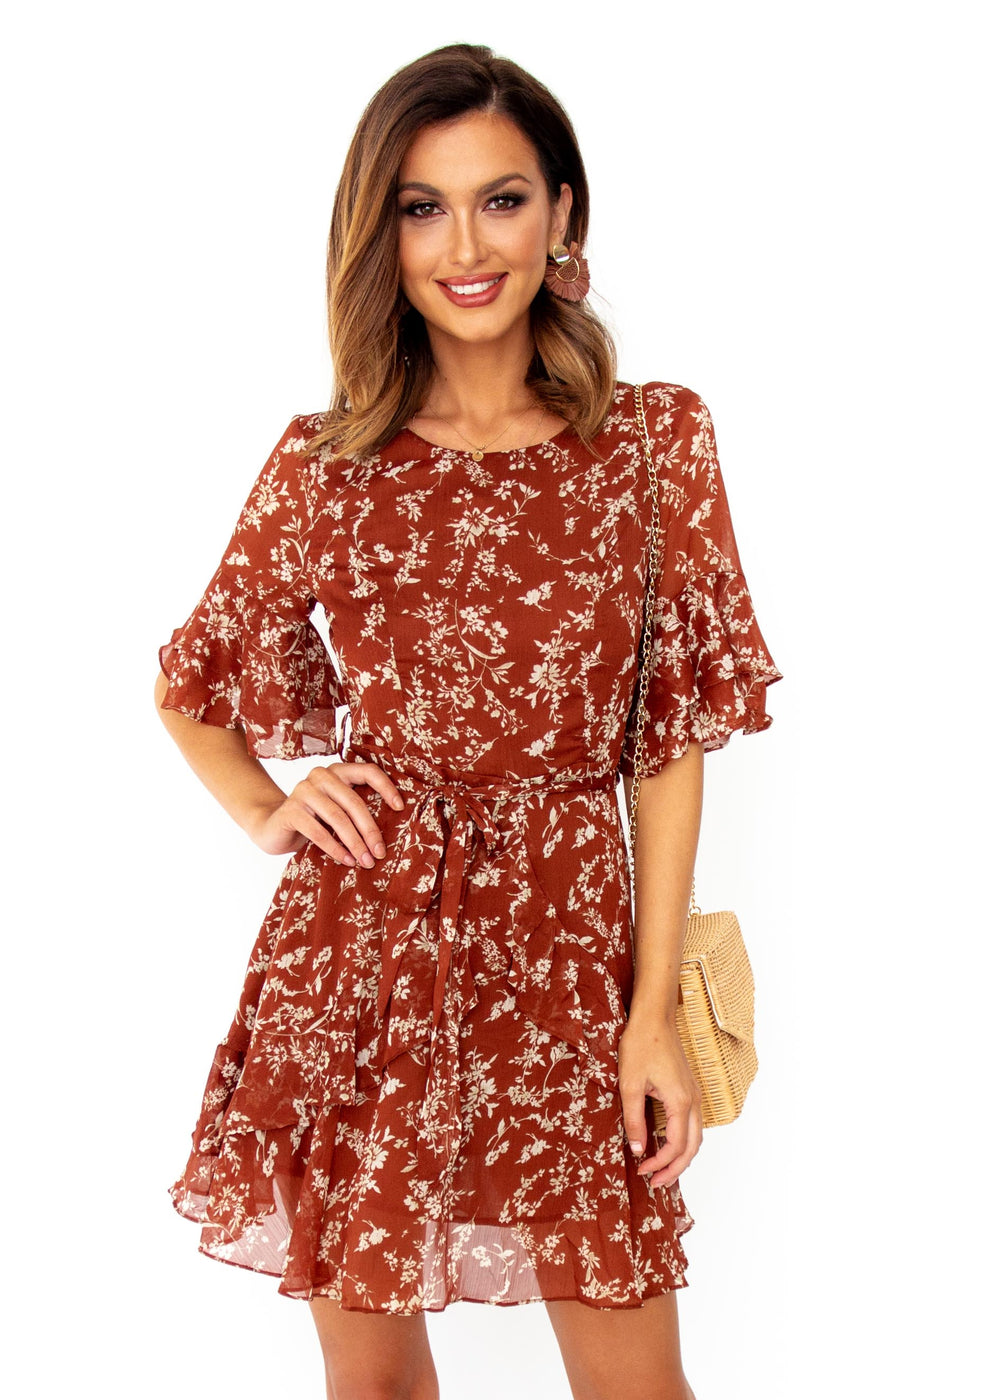 Women's Audacious Dress - Rust Floral